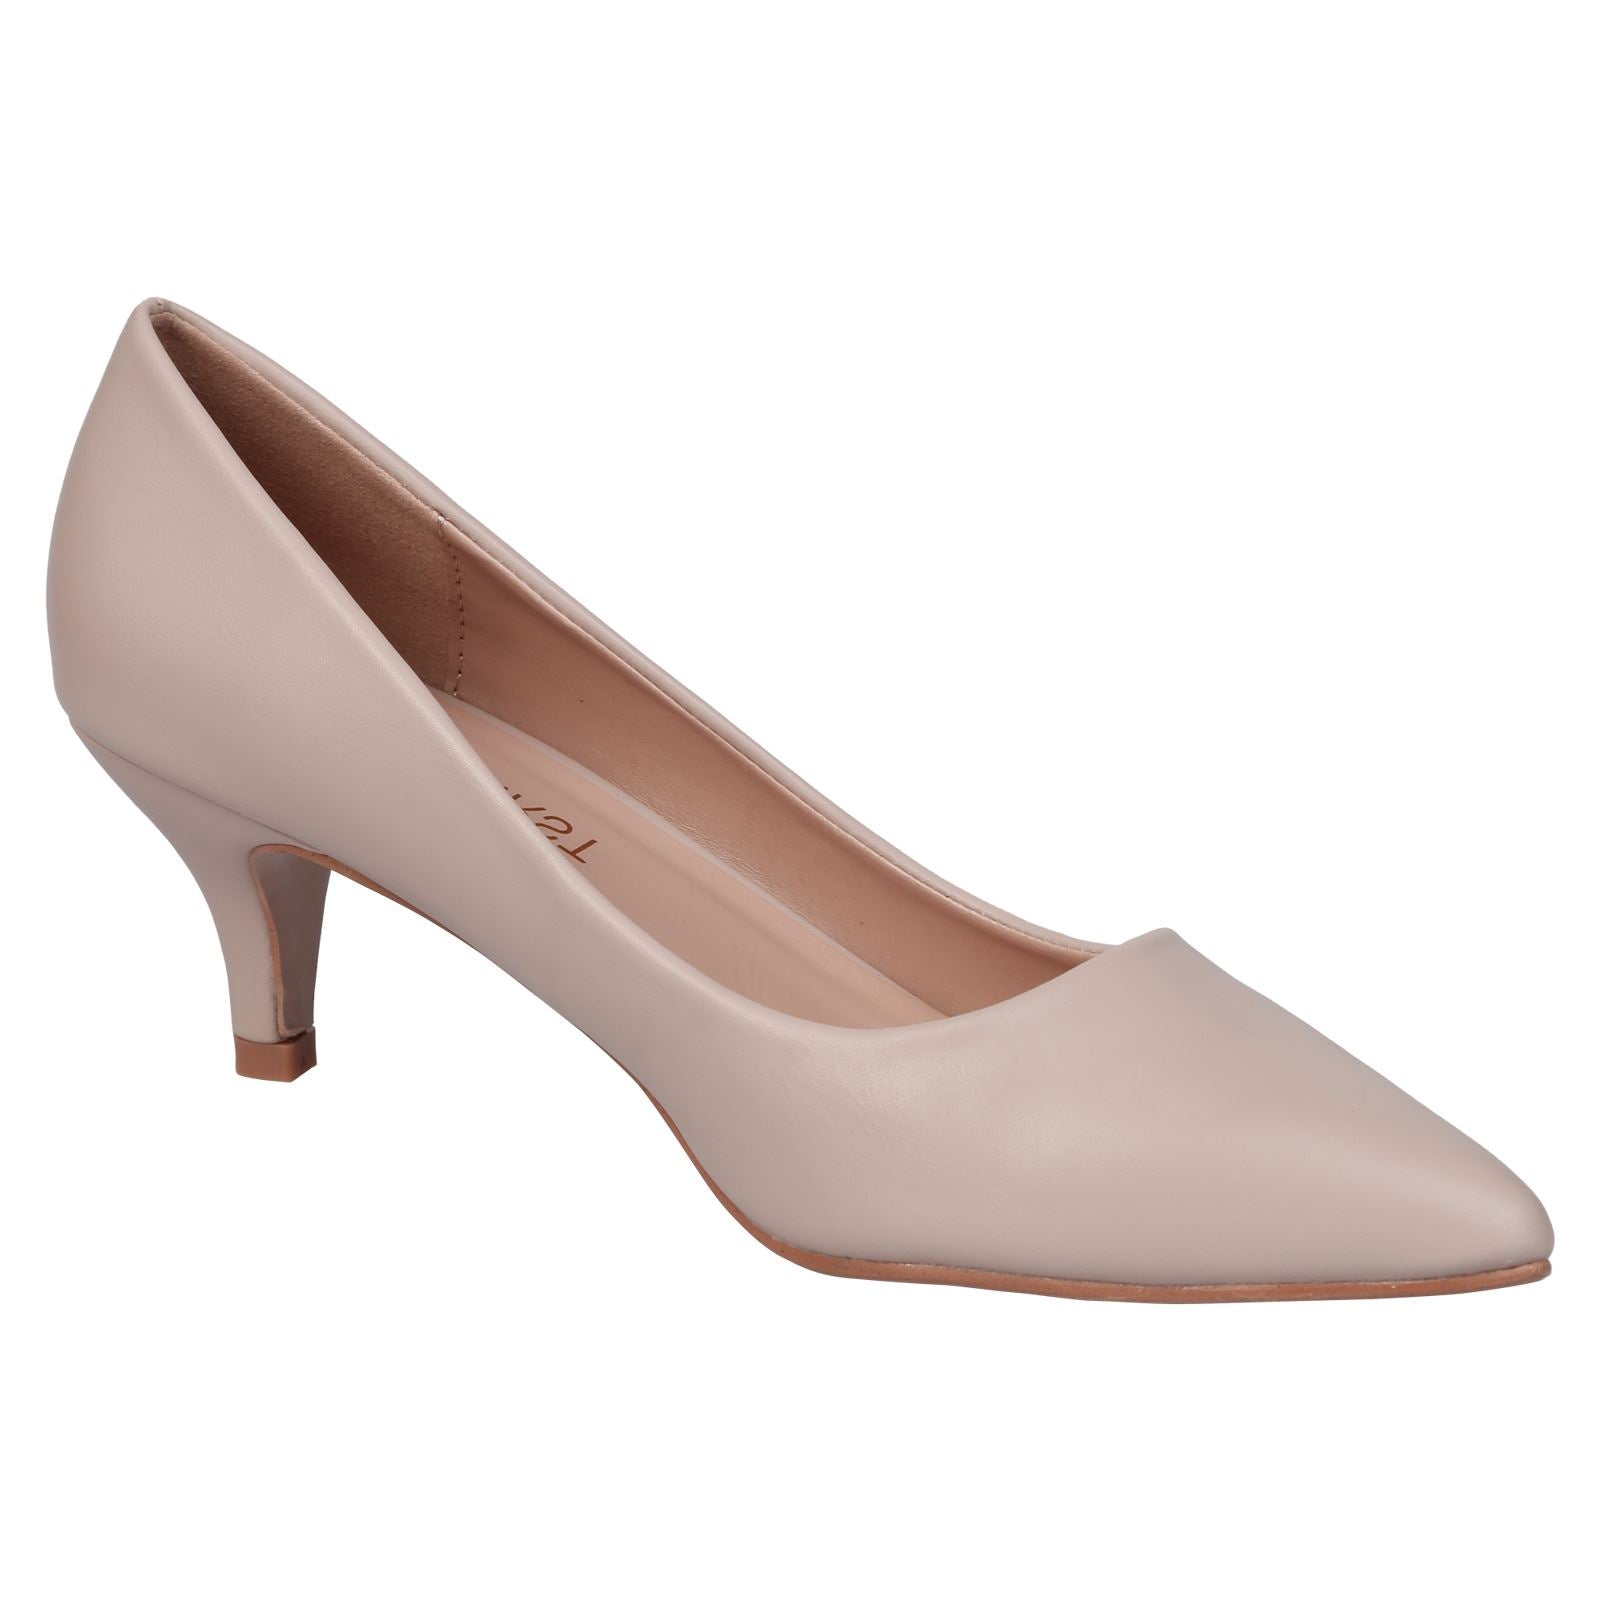 Miranda Kitten Heel Pointed Toe Court Shoes in Nude Faux Leather